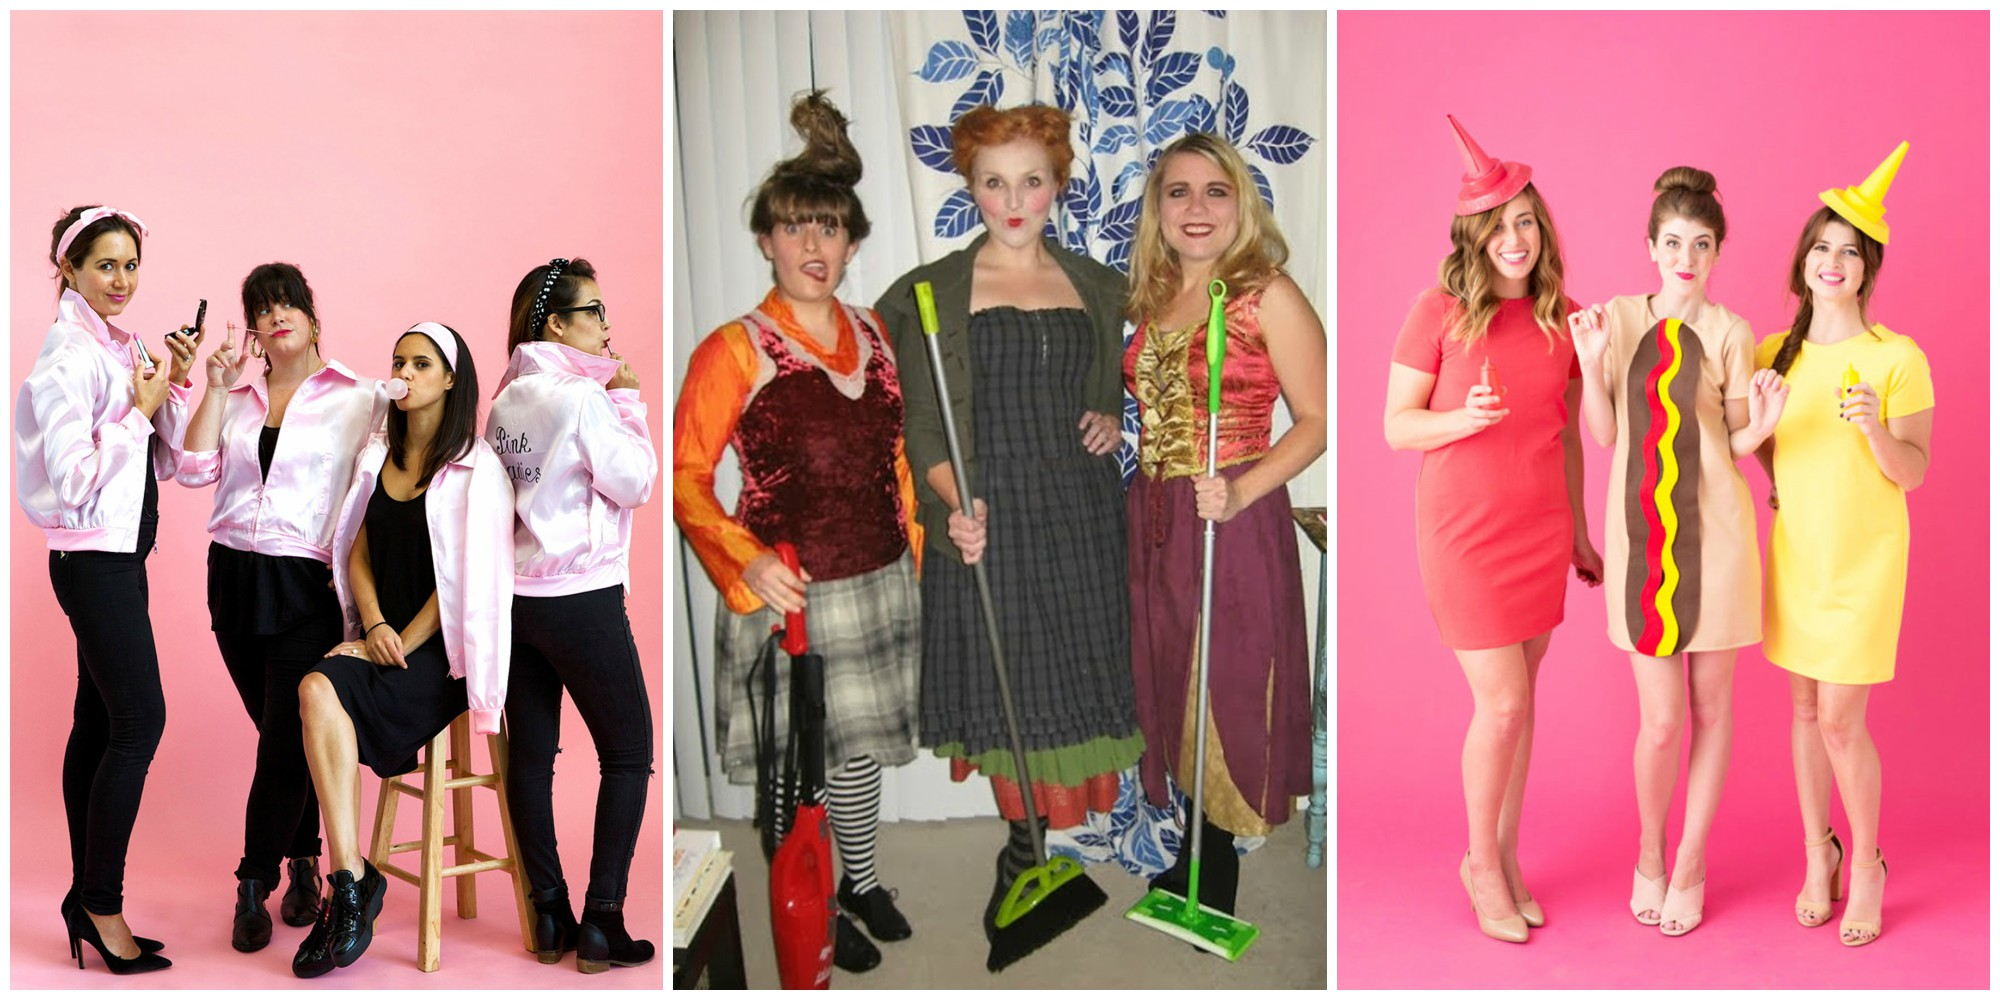 10 Cute Group Halloween Costume Ideas - Easy DIY Friend ...